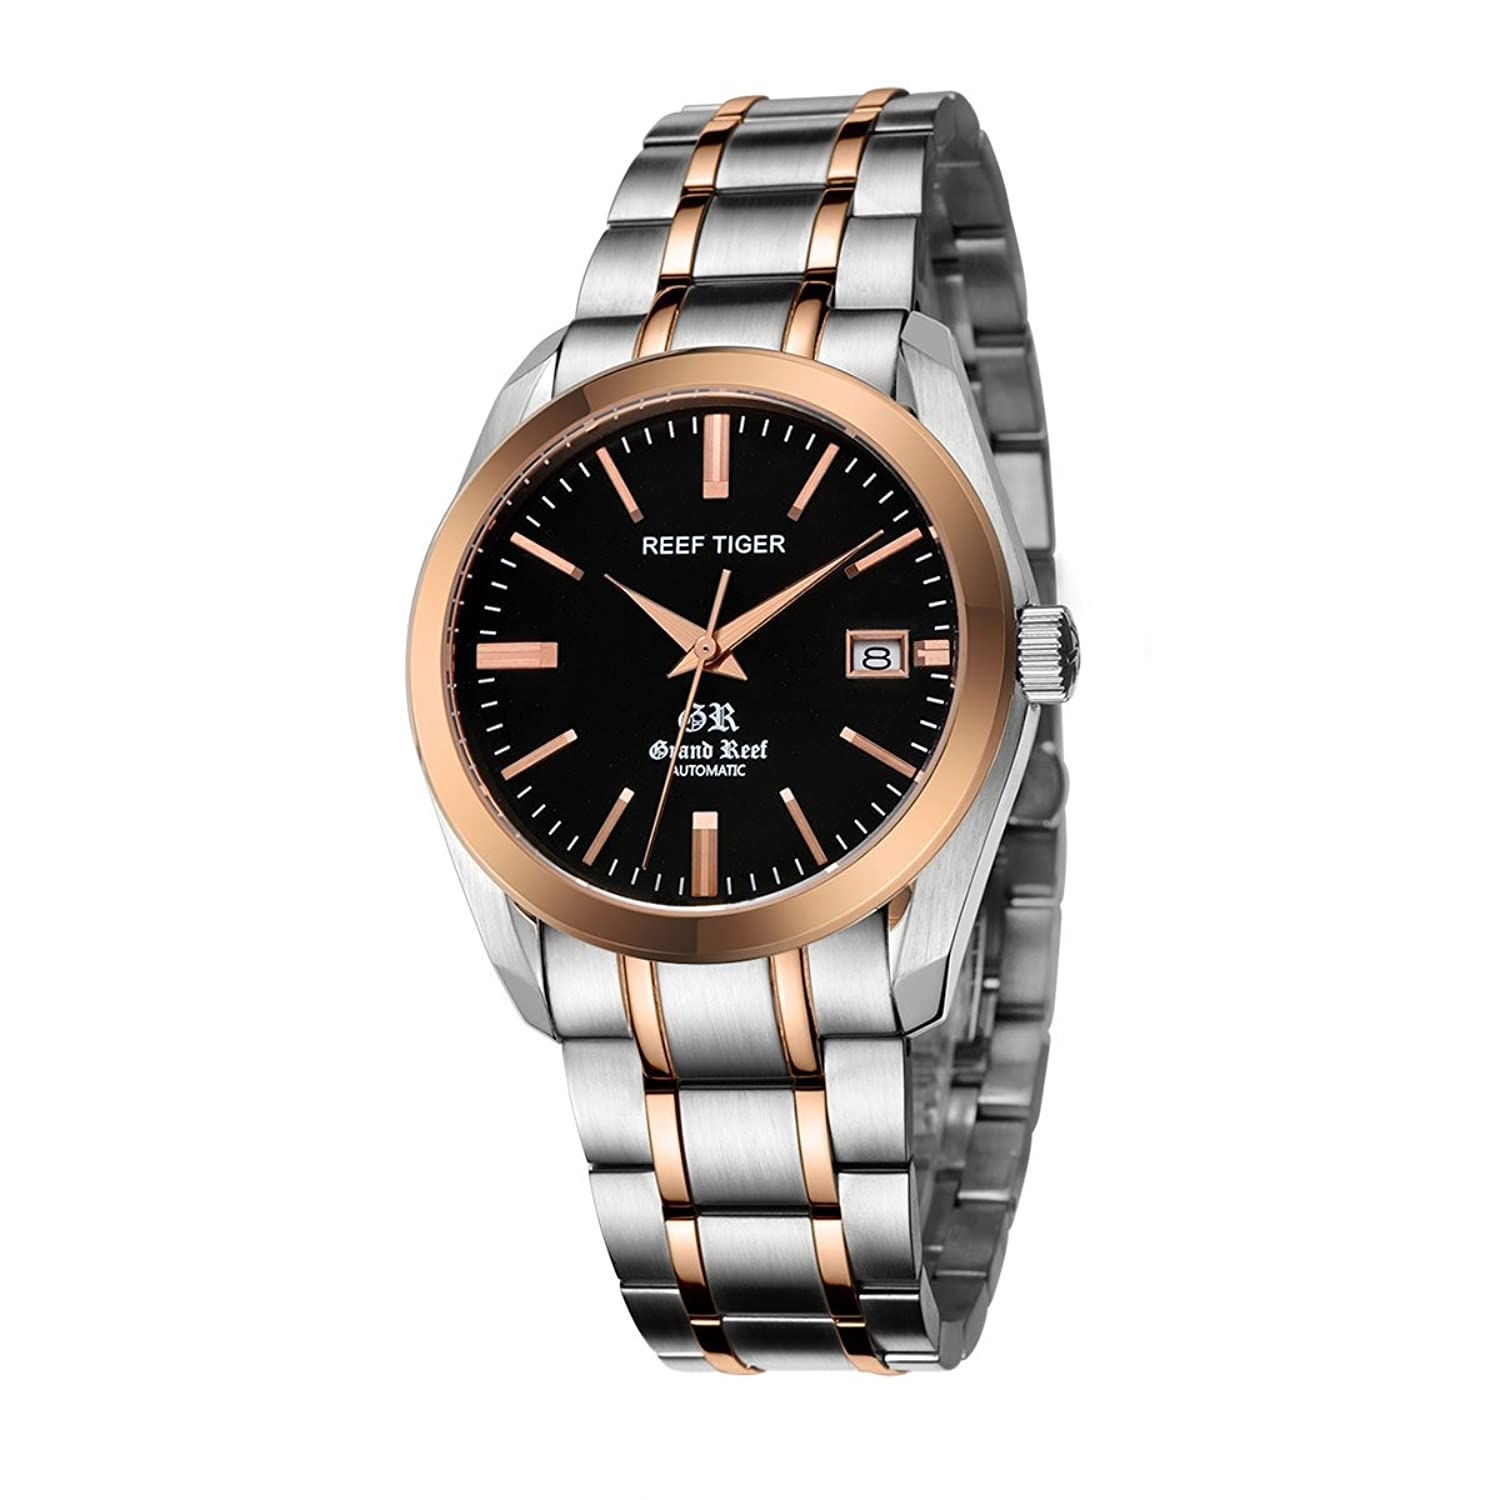 Amazon.com: Reef Tiger Dress Watches for Men Analog Display Automatic Watches Black Dial Rose Gold Watches RGA818: Watches